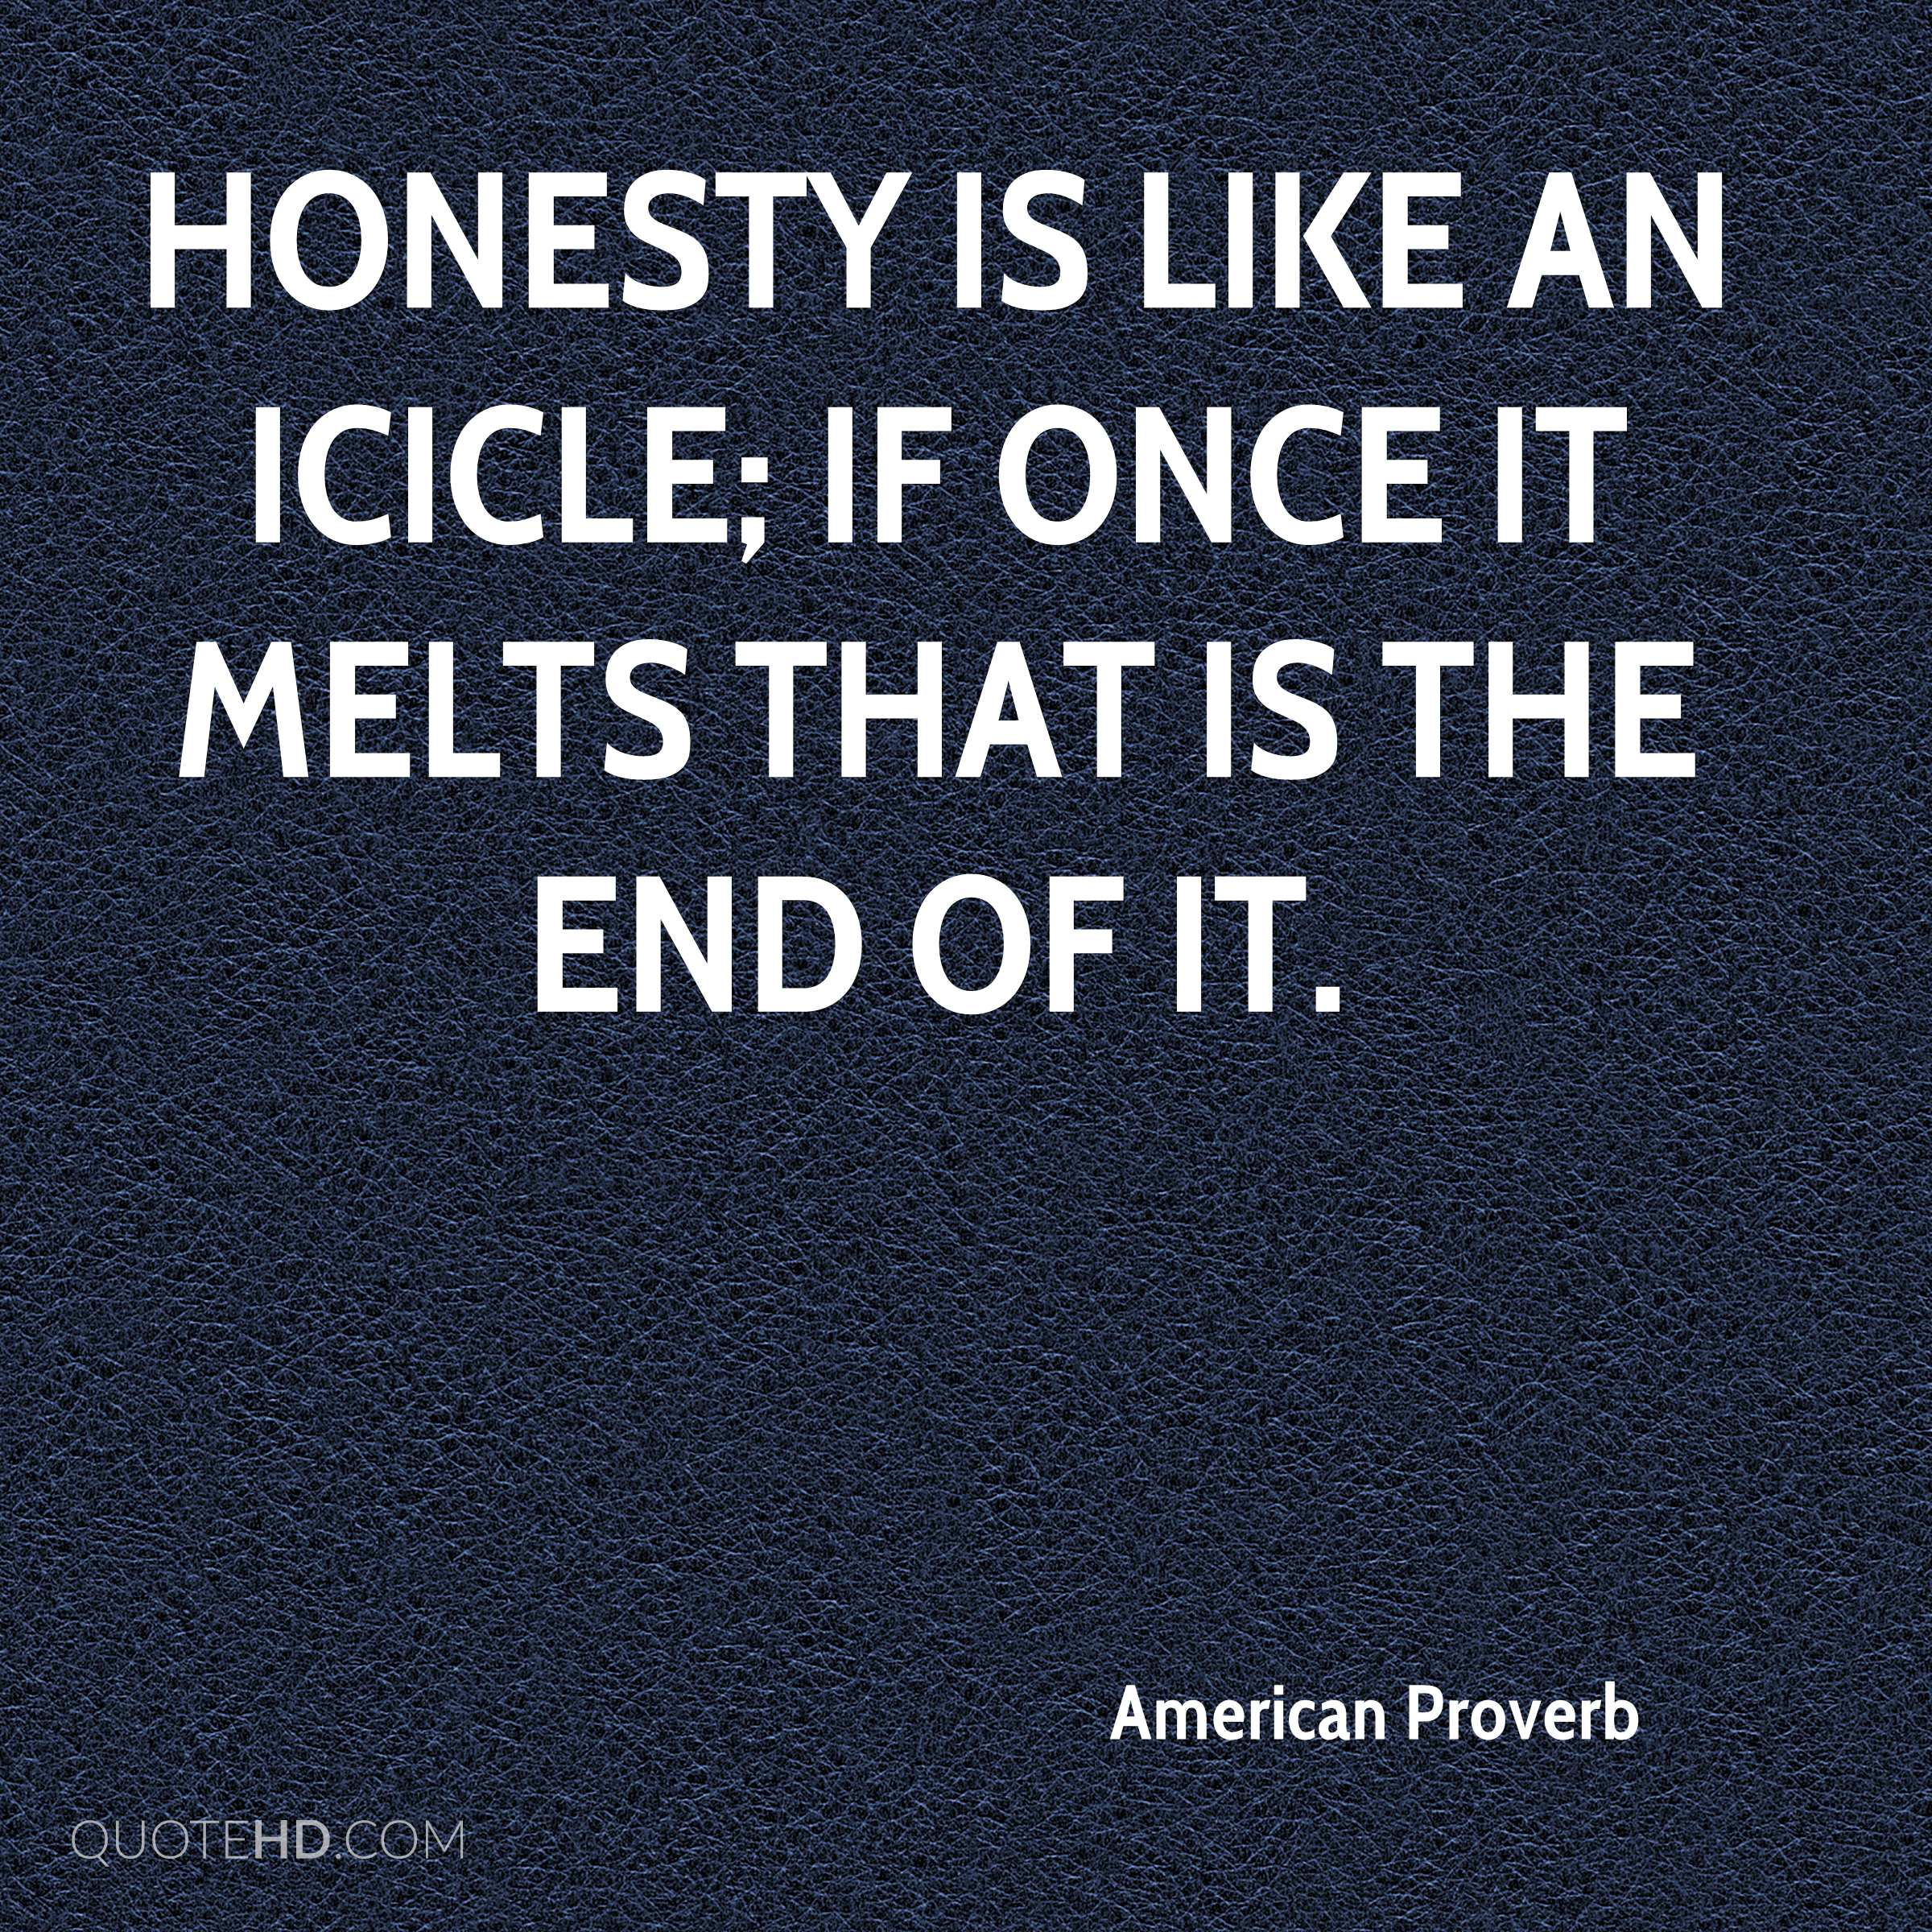 Honesty Quotes American Proverb Quotes  Quotehd